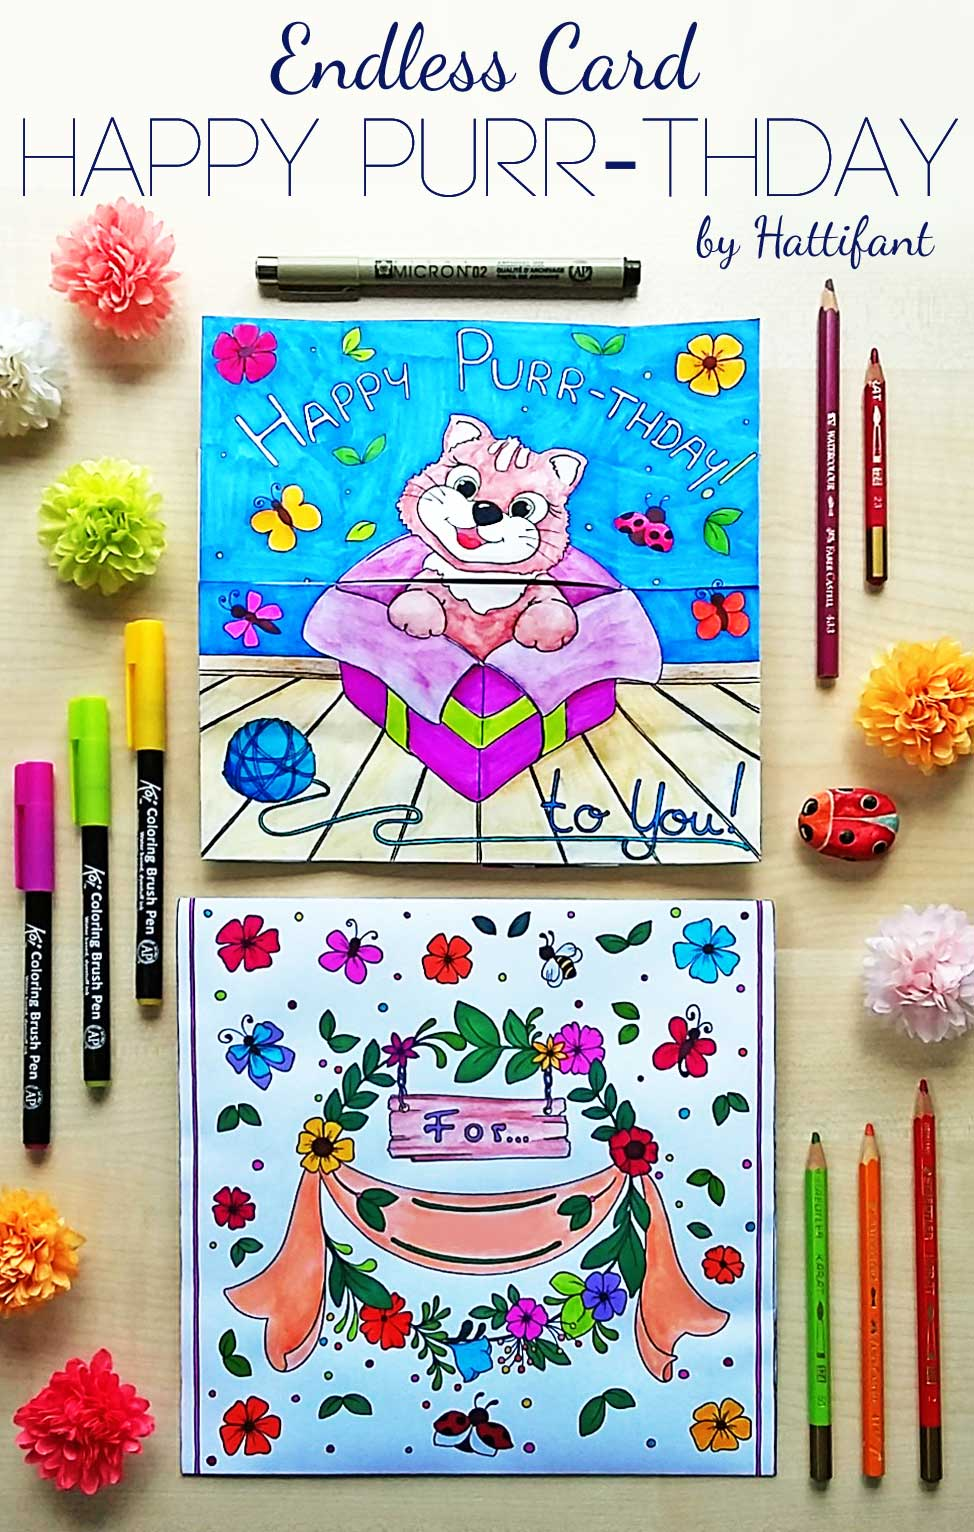 Hattifant's Endless Card Purr-thday Card and Purrfect Gift Card